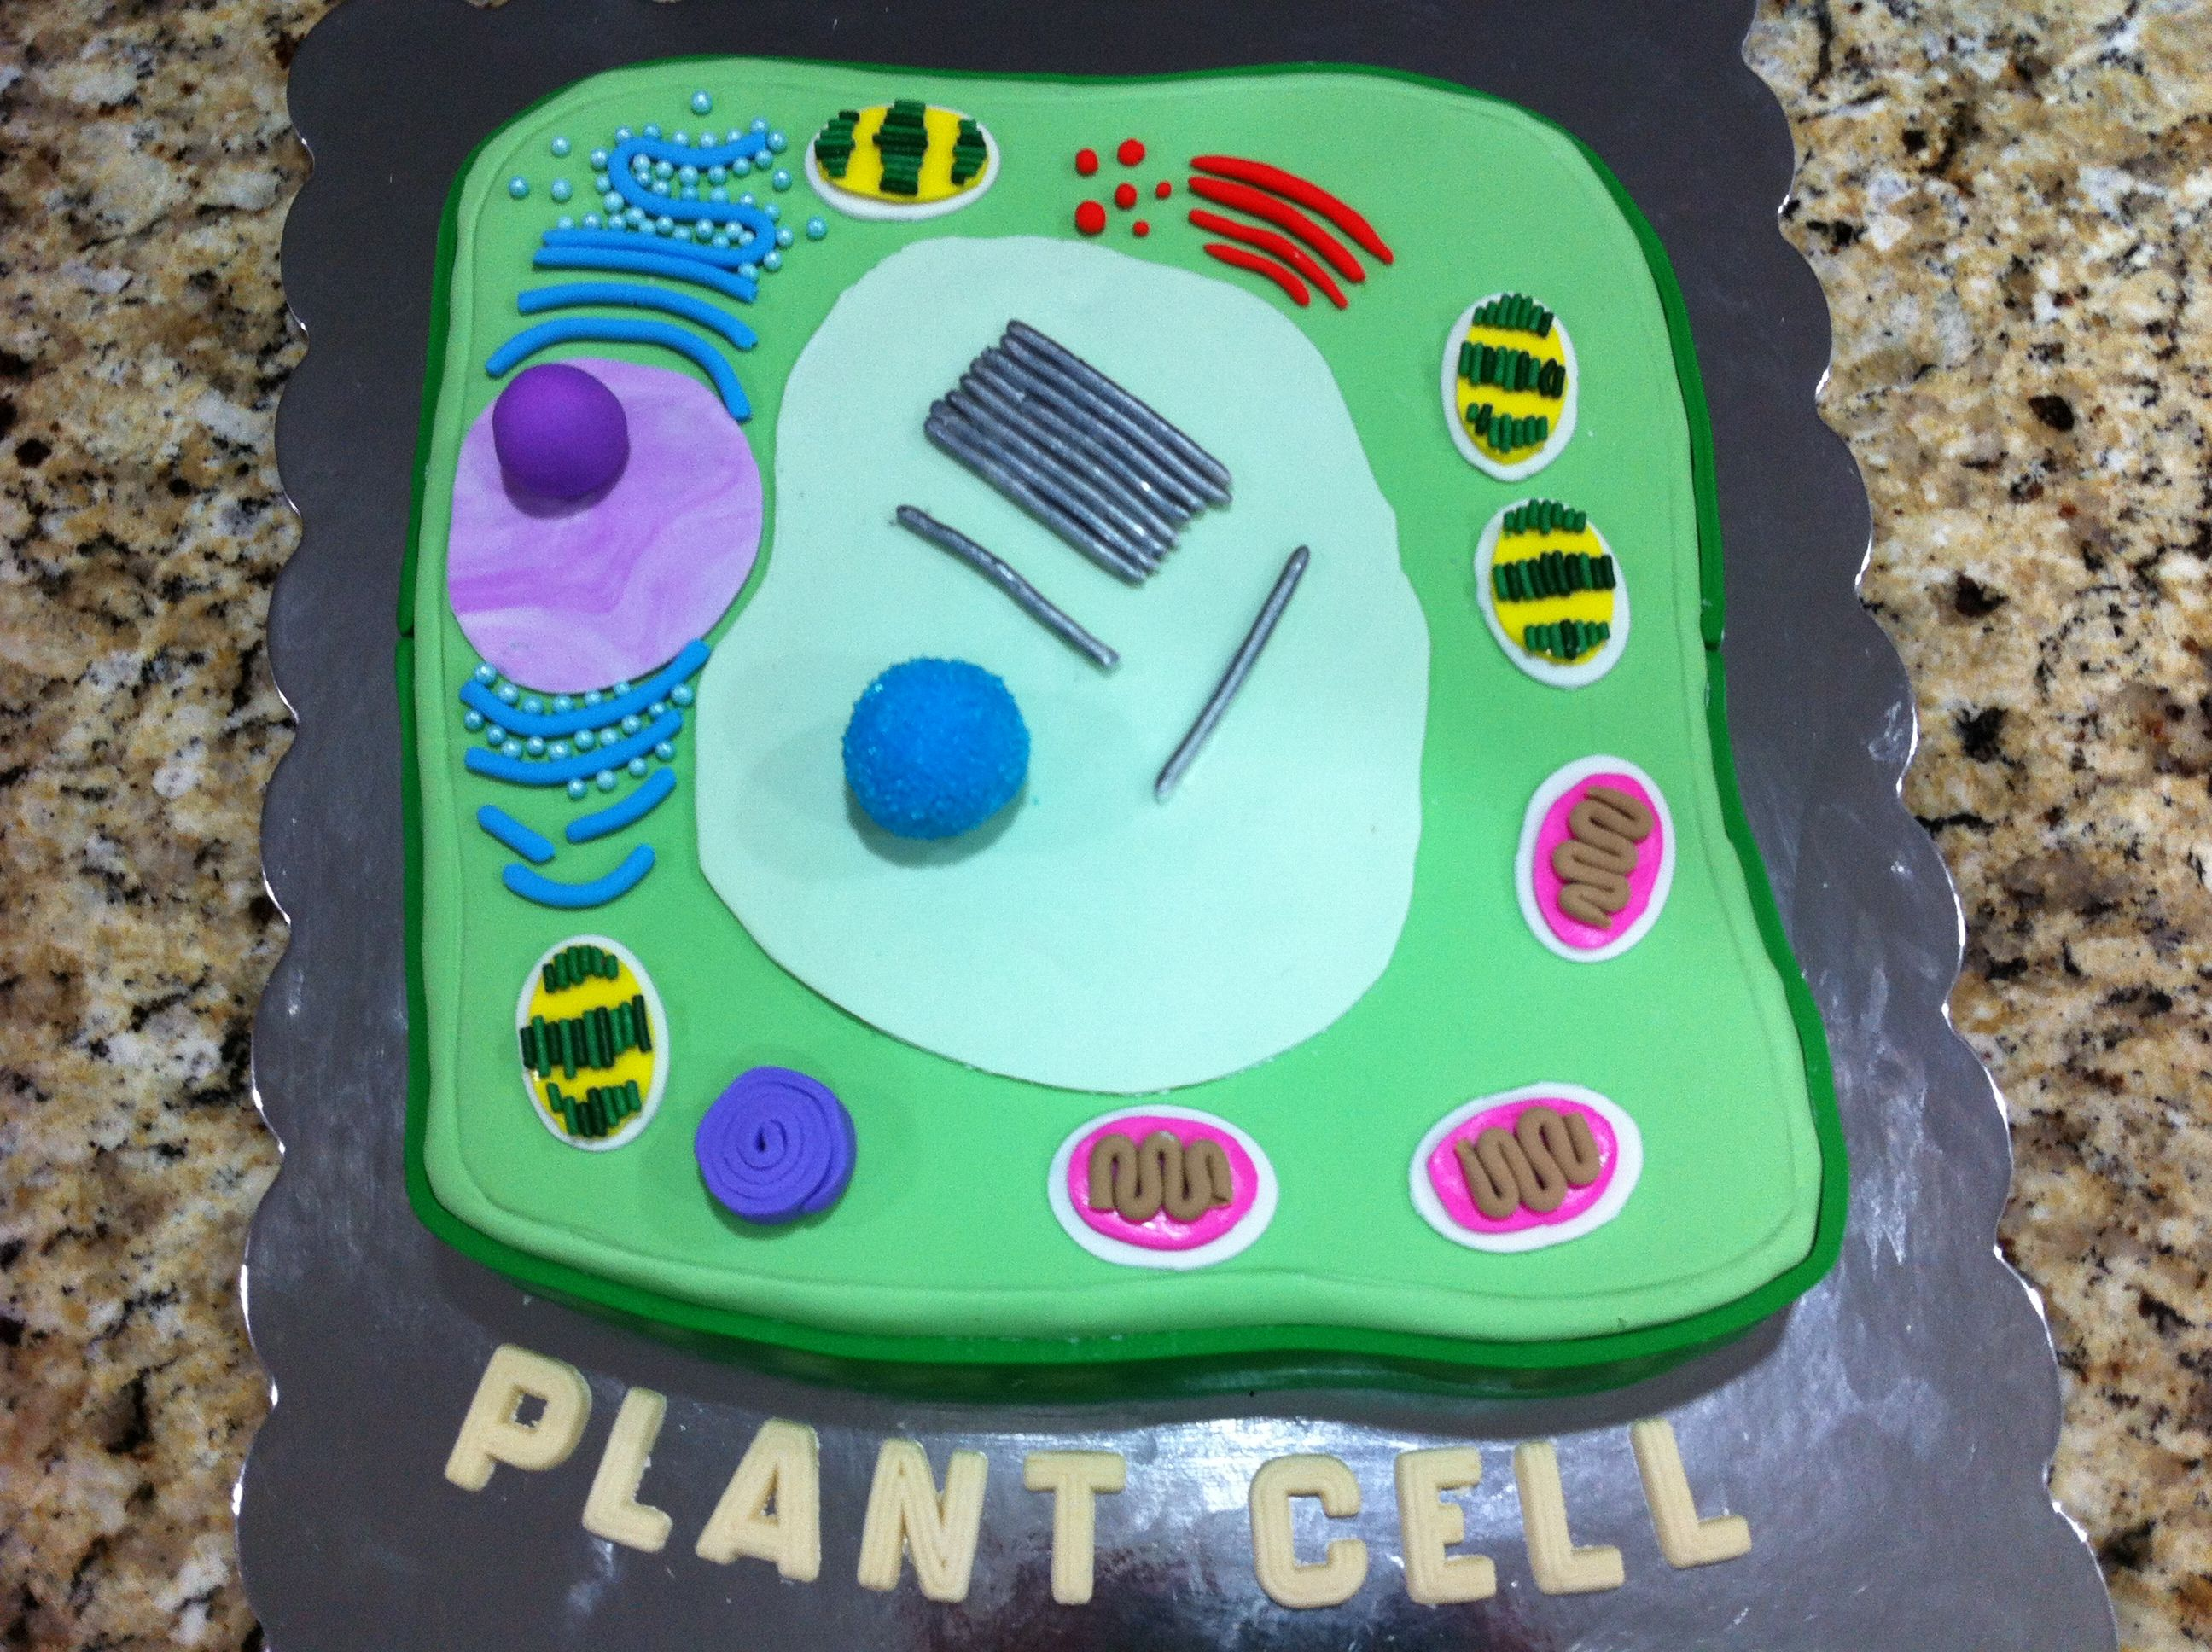 Plant Cell Cake | Plant cell model, Plant cell cake, Cell ...